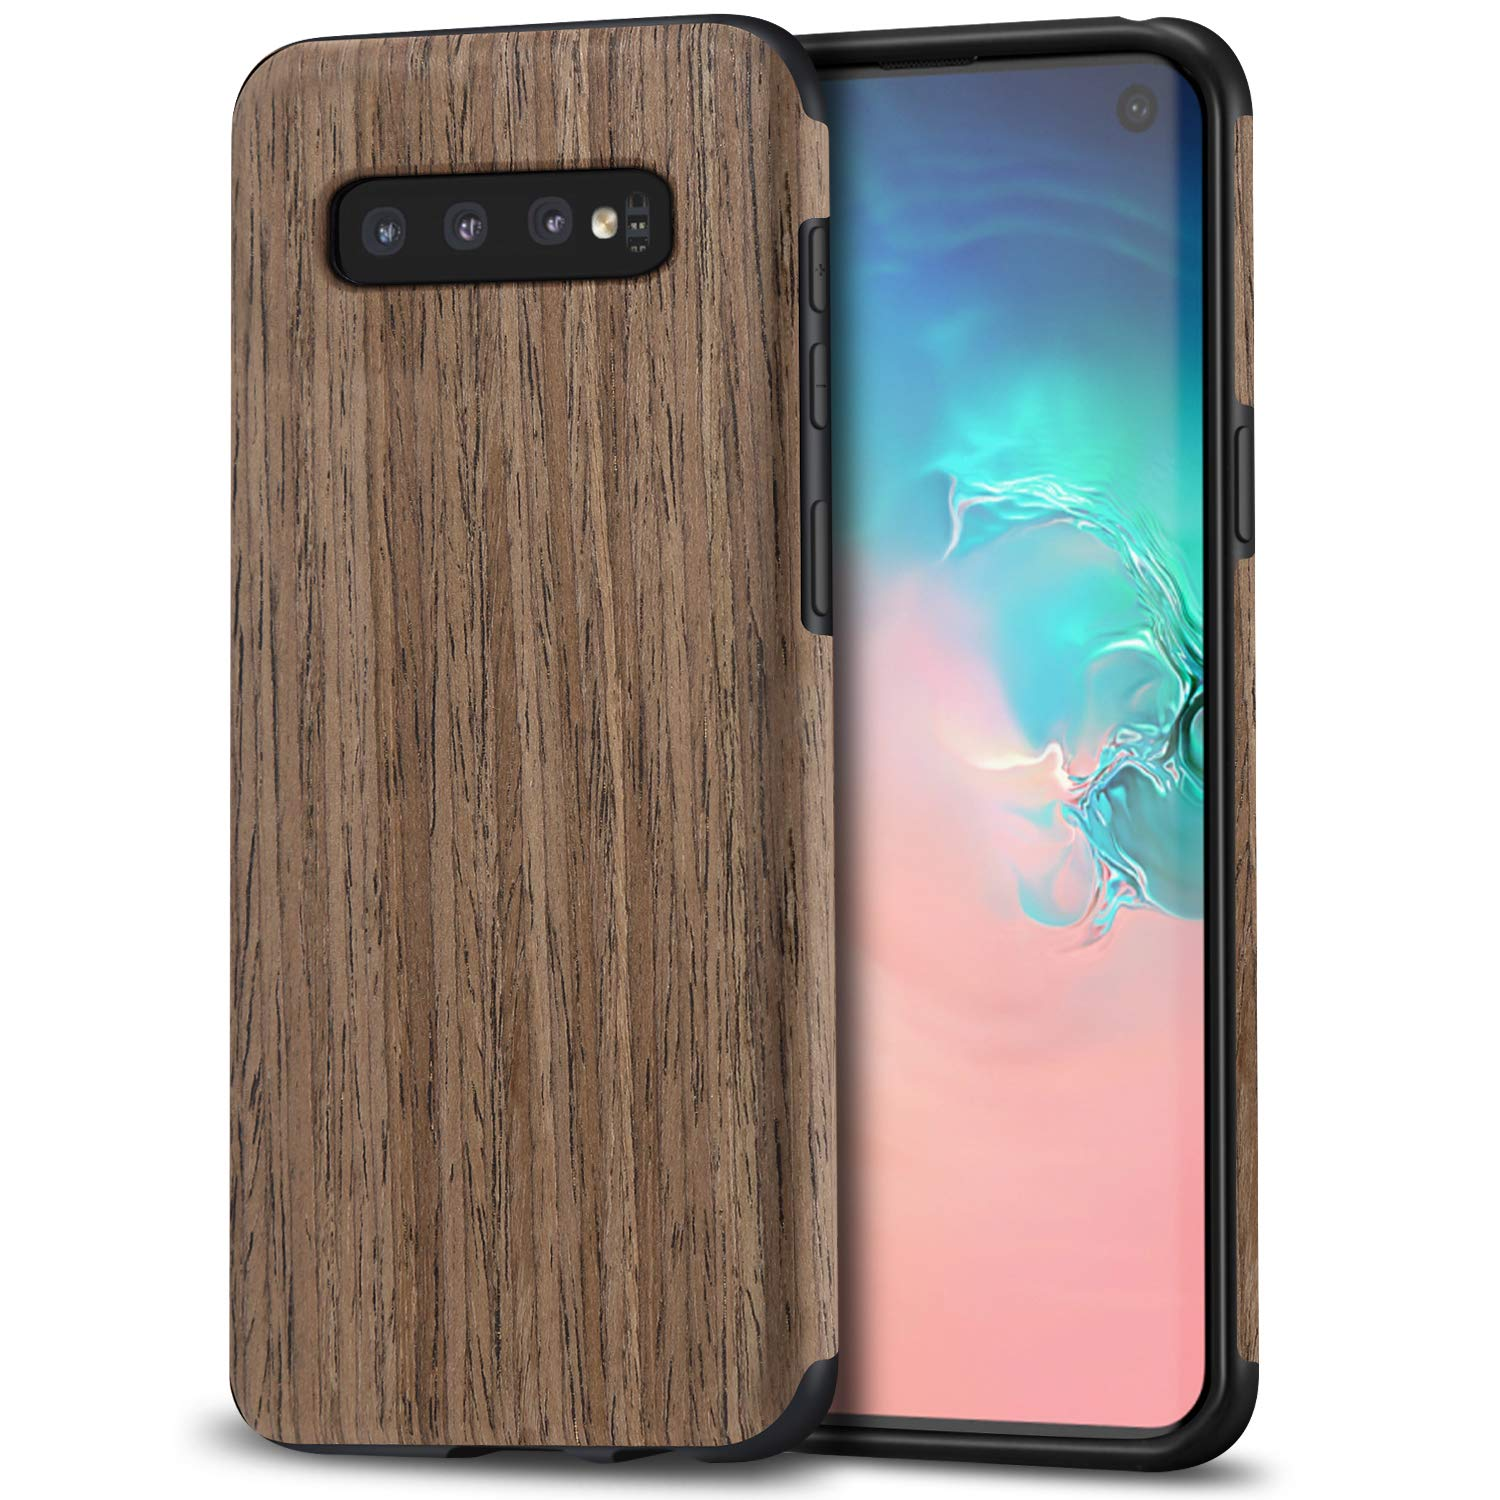 TENDLIN Galaxy S10e Case Wood Grain Outside Design and Flexible TPU Silicone Hybrid Slim Case Compatible with Samsung Galaxy S10e